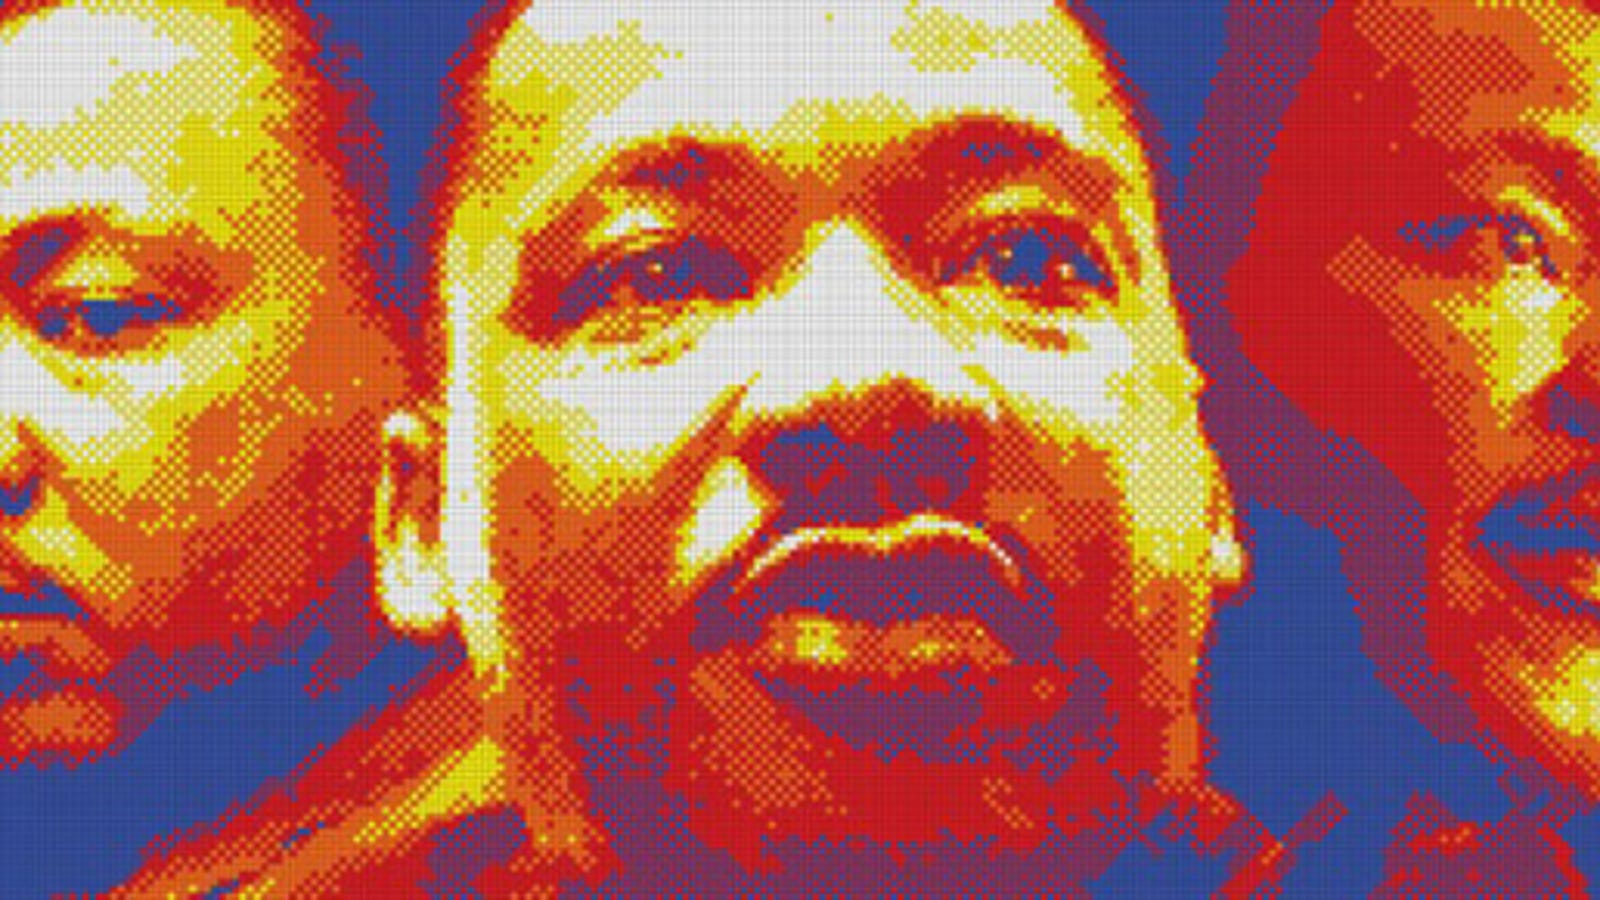 Amazing Martin Luther King Jr Portrait Made From 4200 Rubiks Cubes